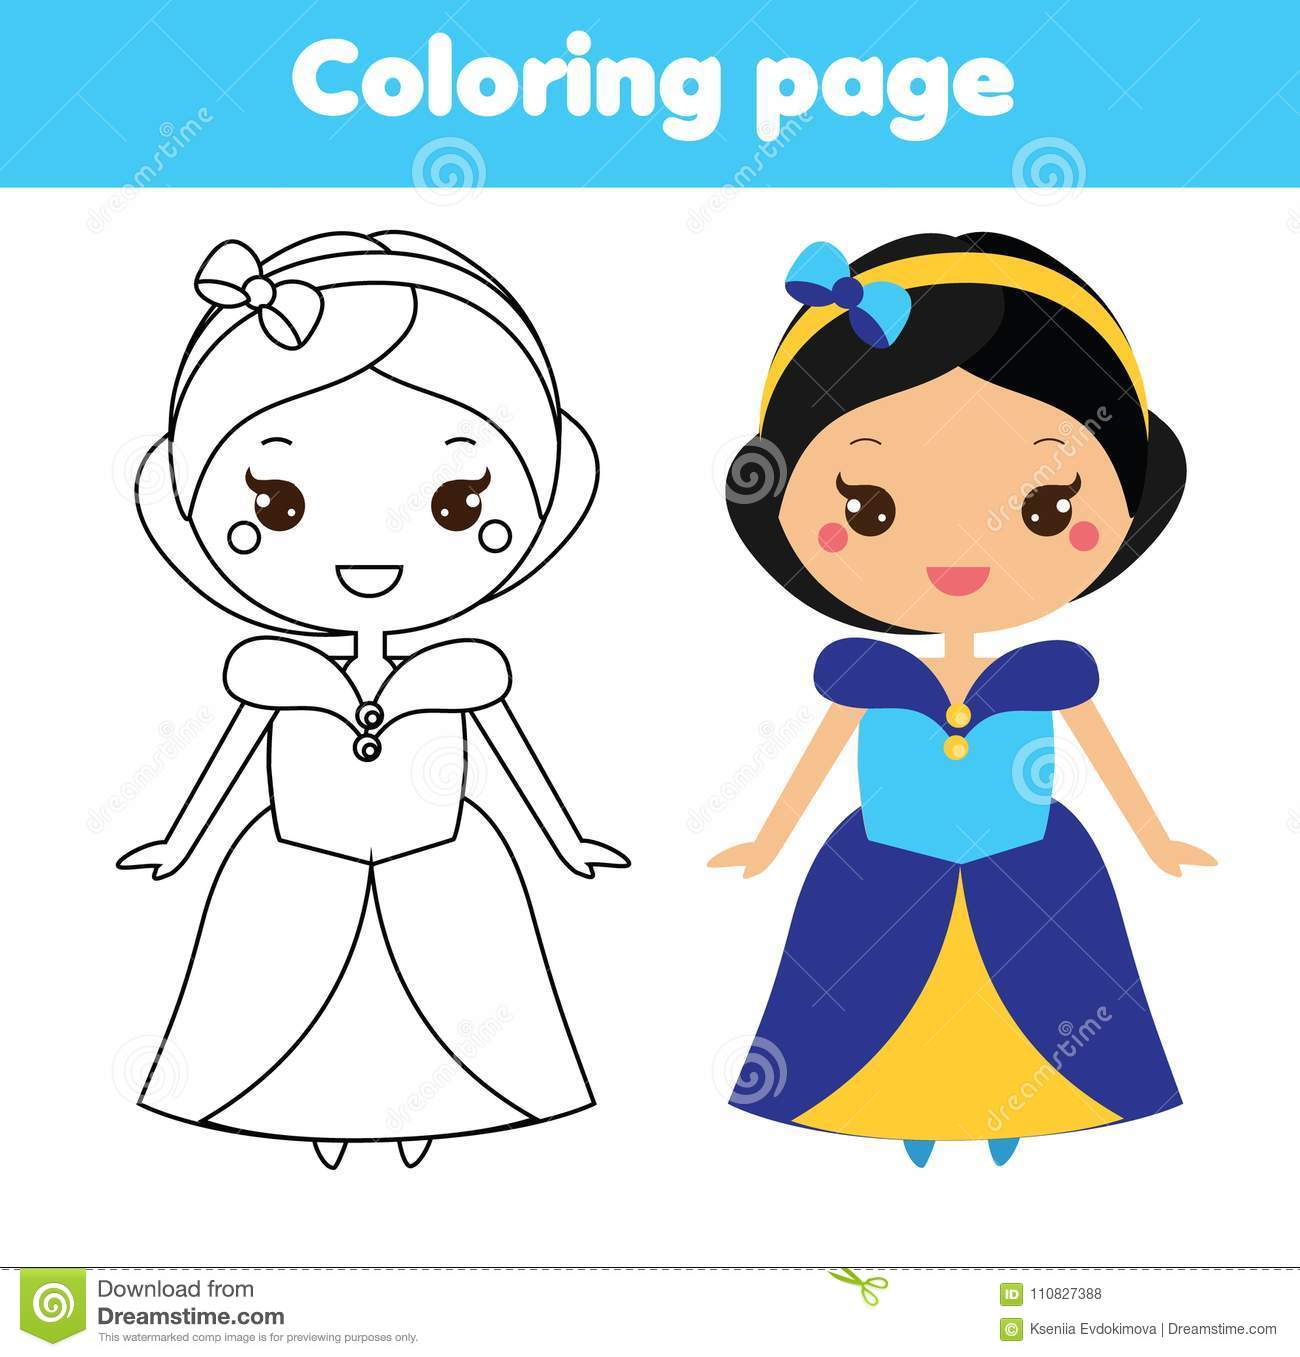 Kids Coloring 30 Coloring Page - Free Dot To Dot Coloring Pages ... | 1357x1300